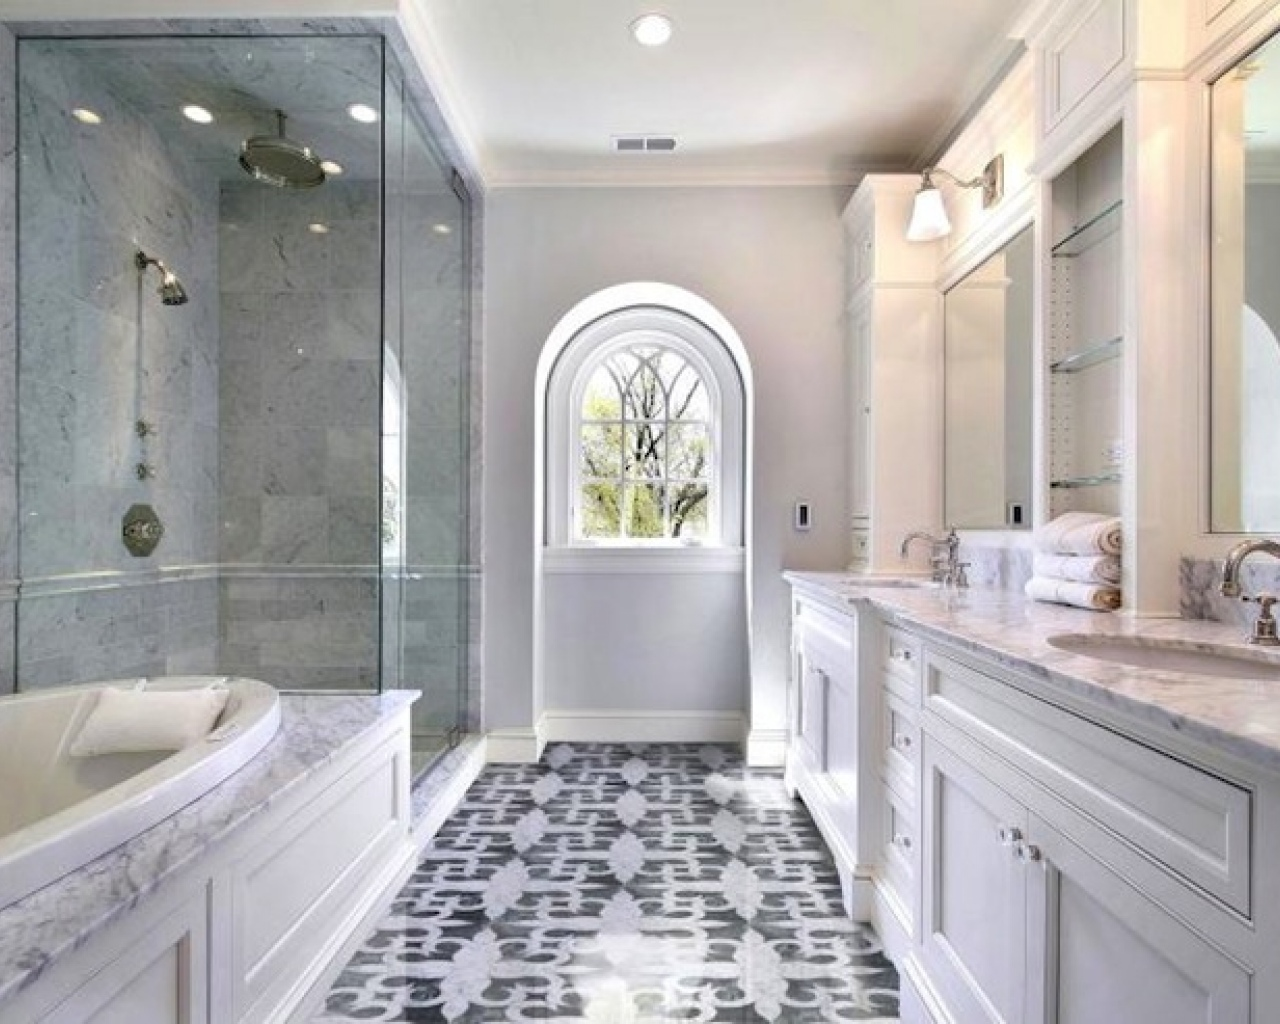 25 amazing italian bathroom tile designs ideas and pictures for Bathroom tile designs ideas